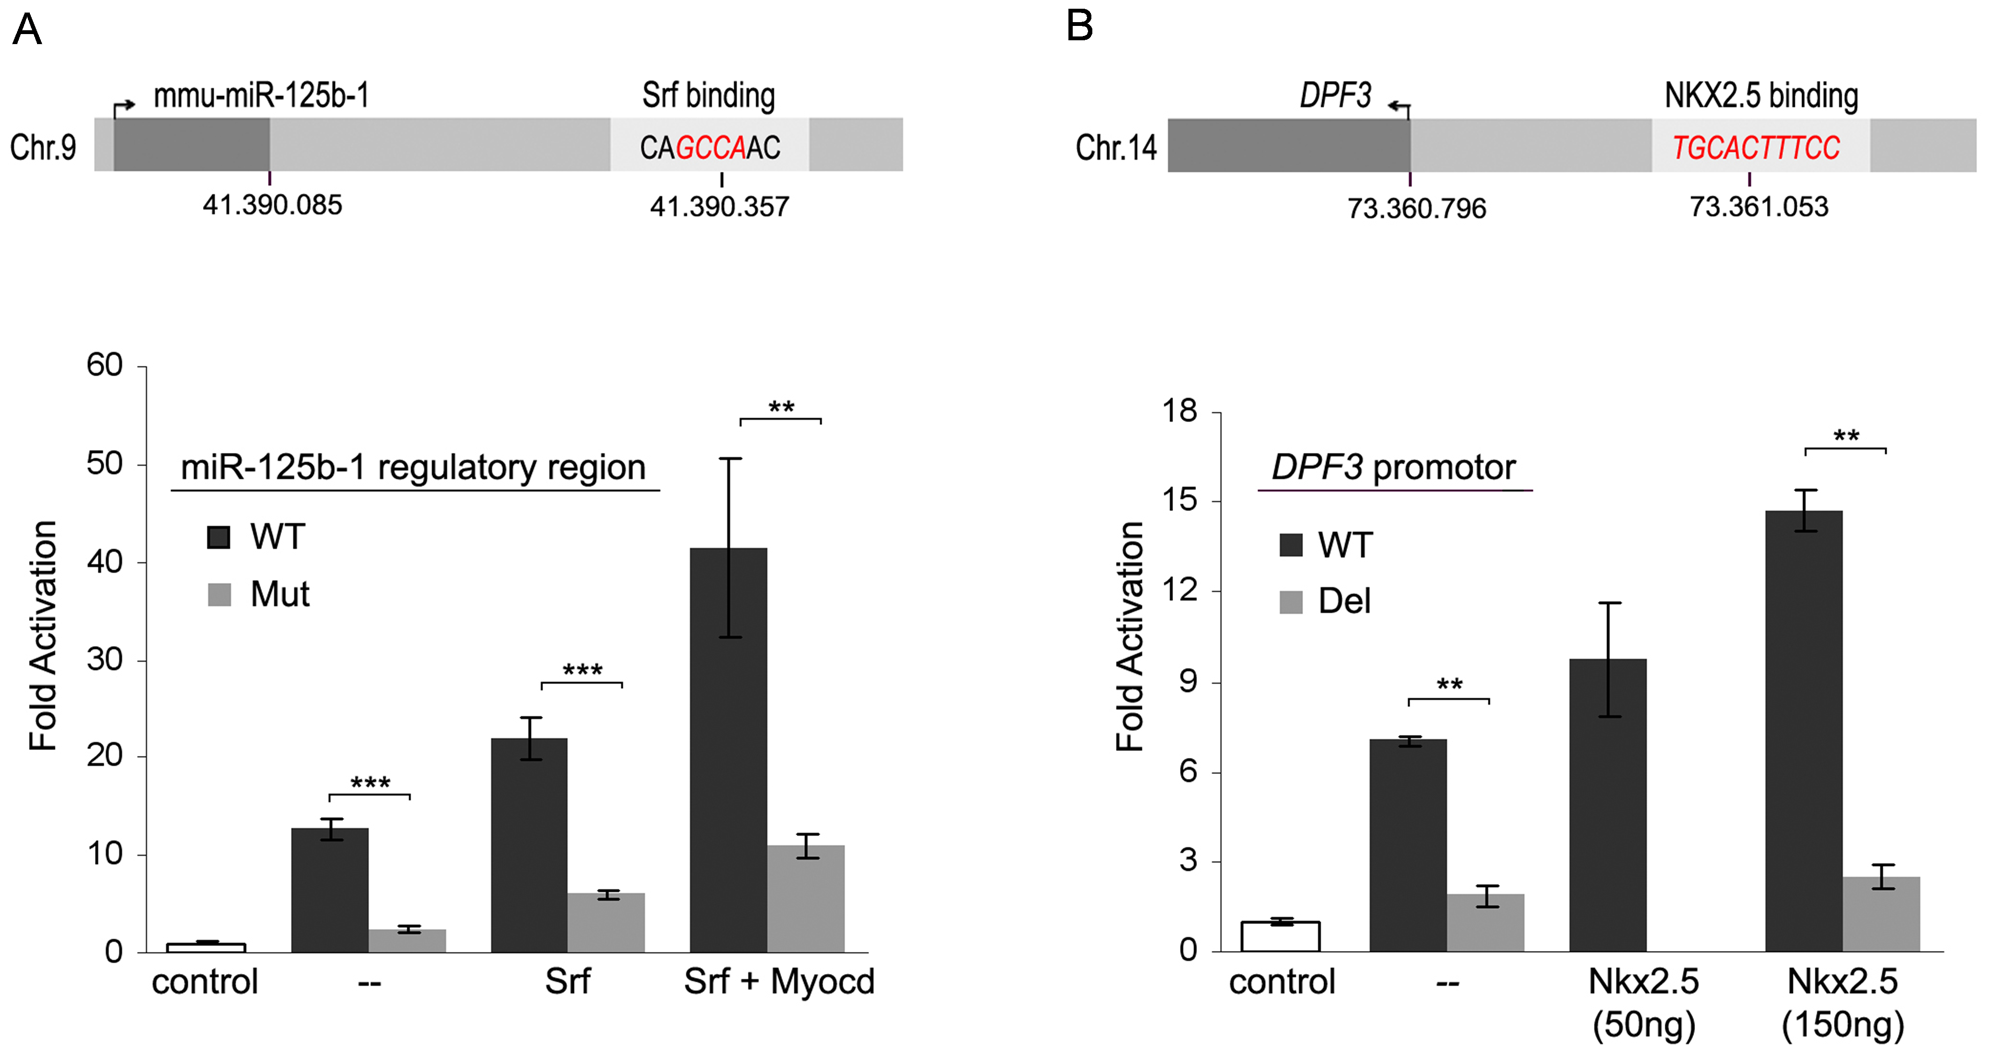 Promoter analysis of miR-125b-1 and <i>DPF3</i>.